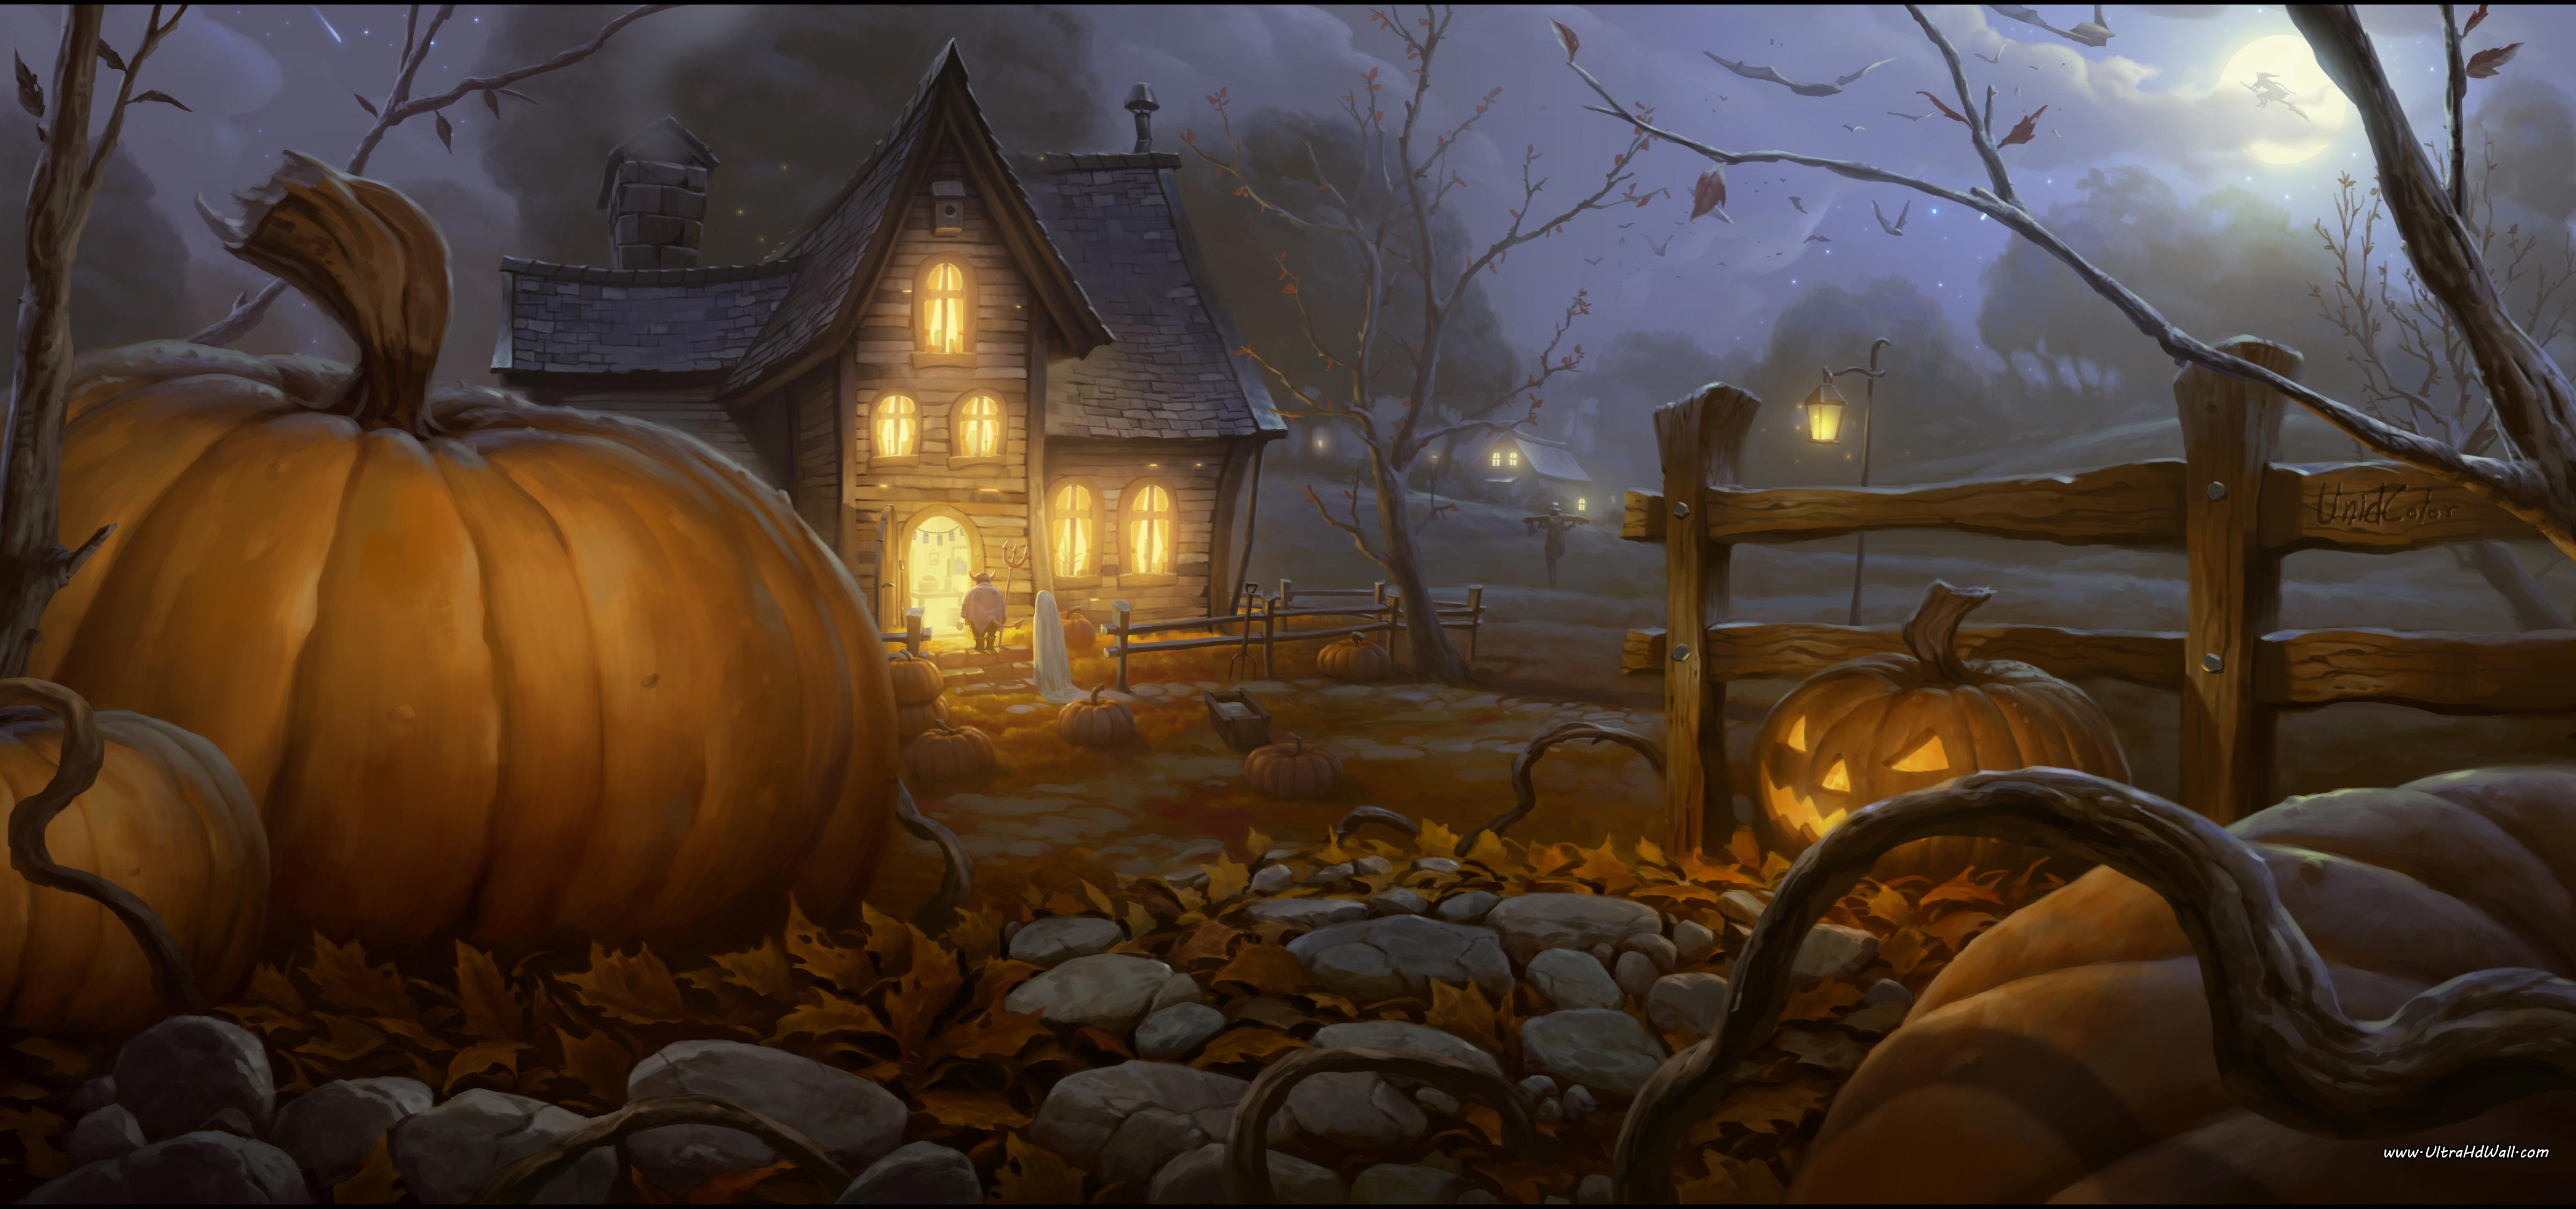 Halloween Wallpapers For Desktop - Wallpaper Cave